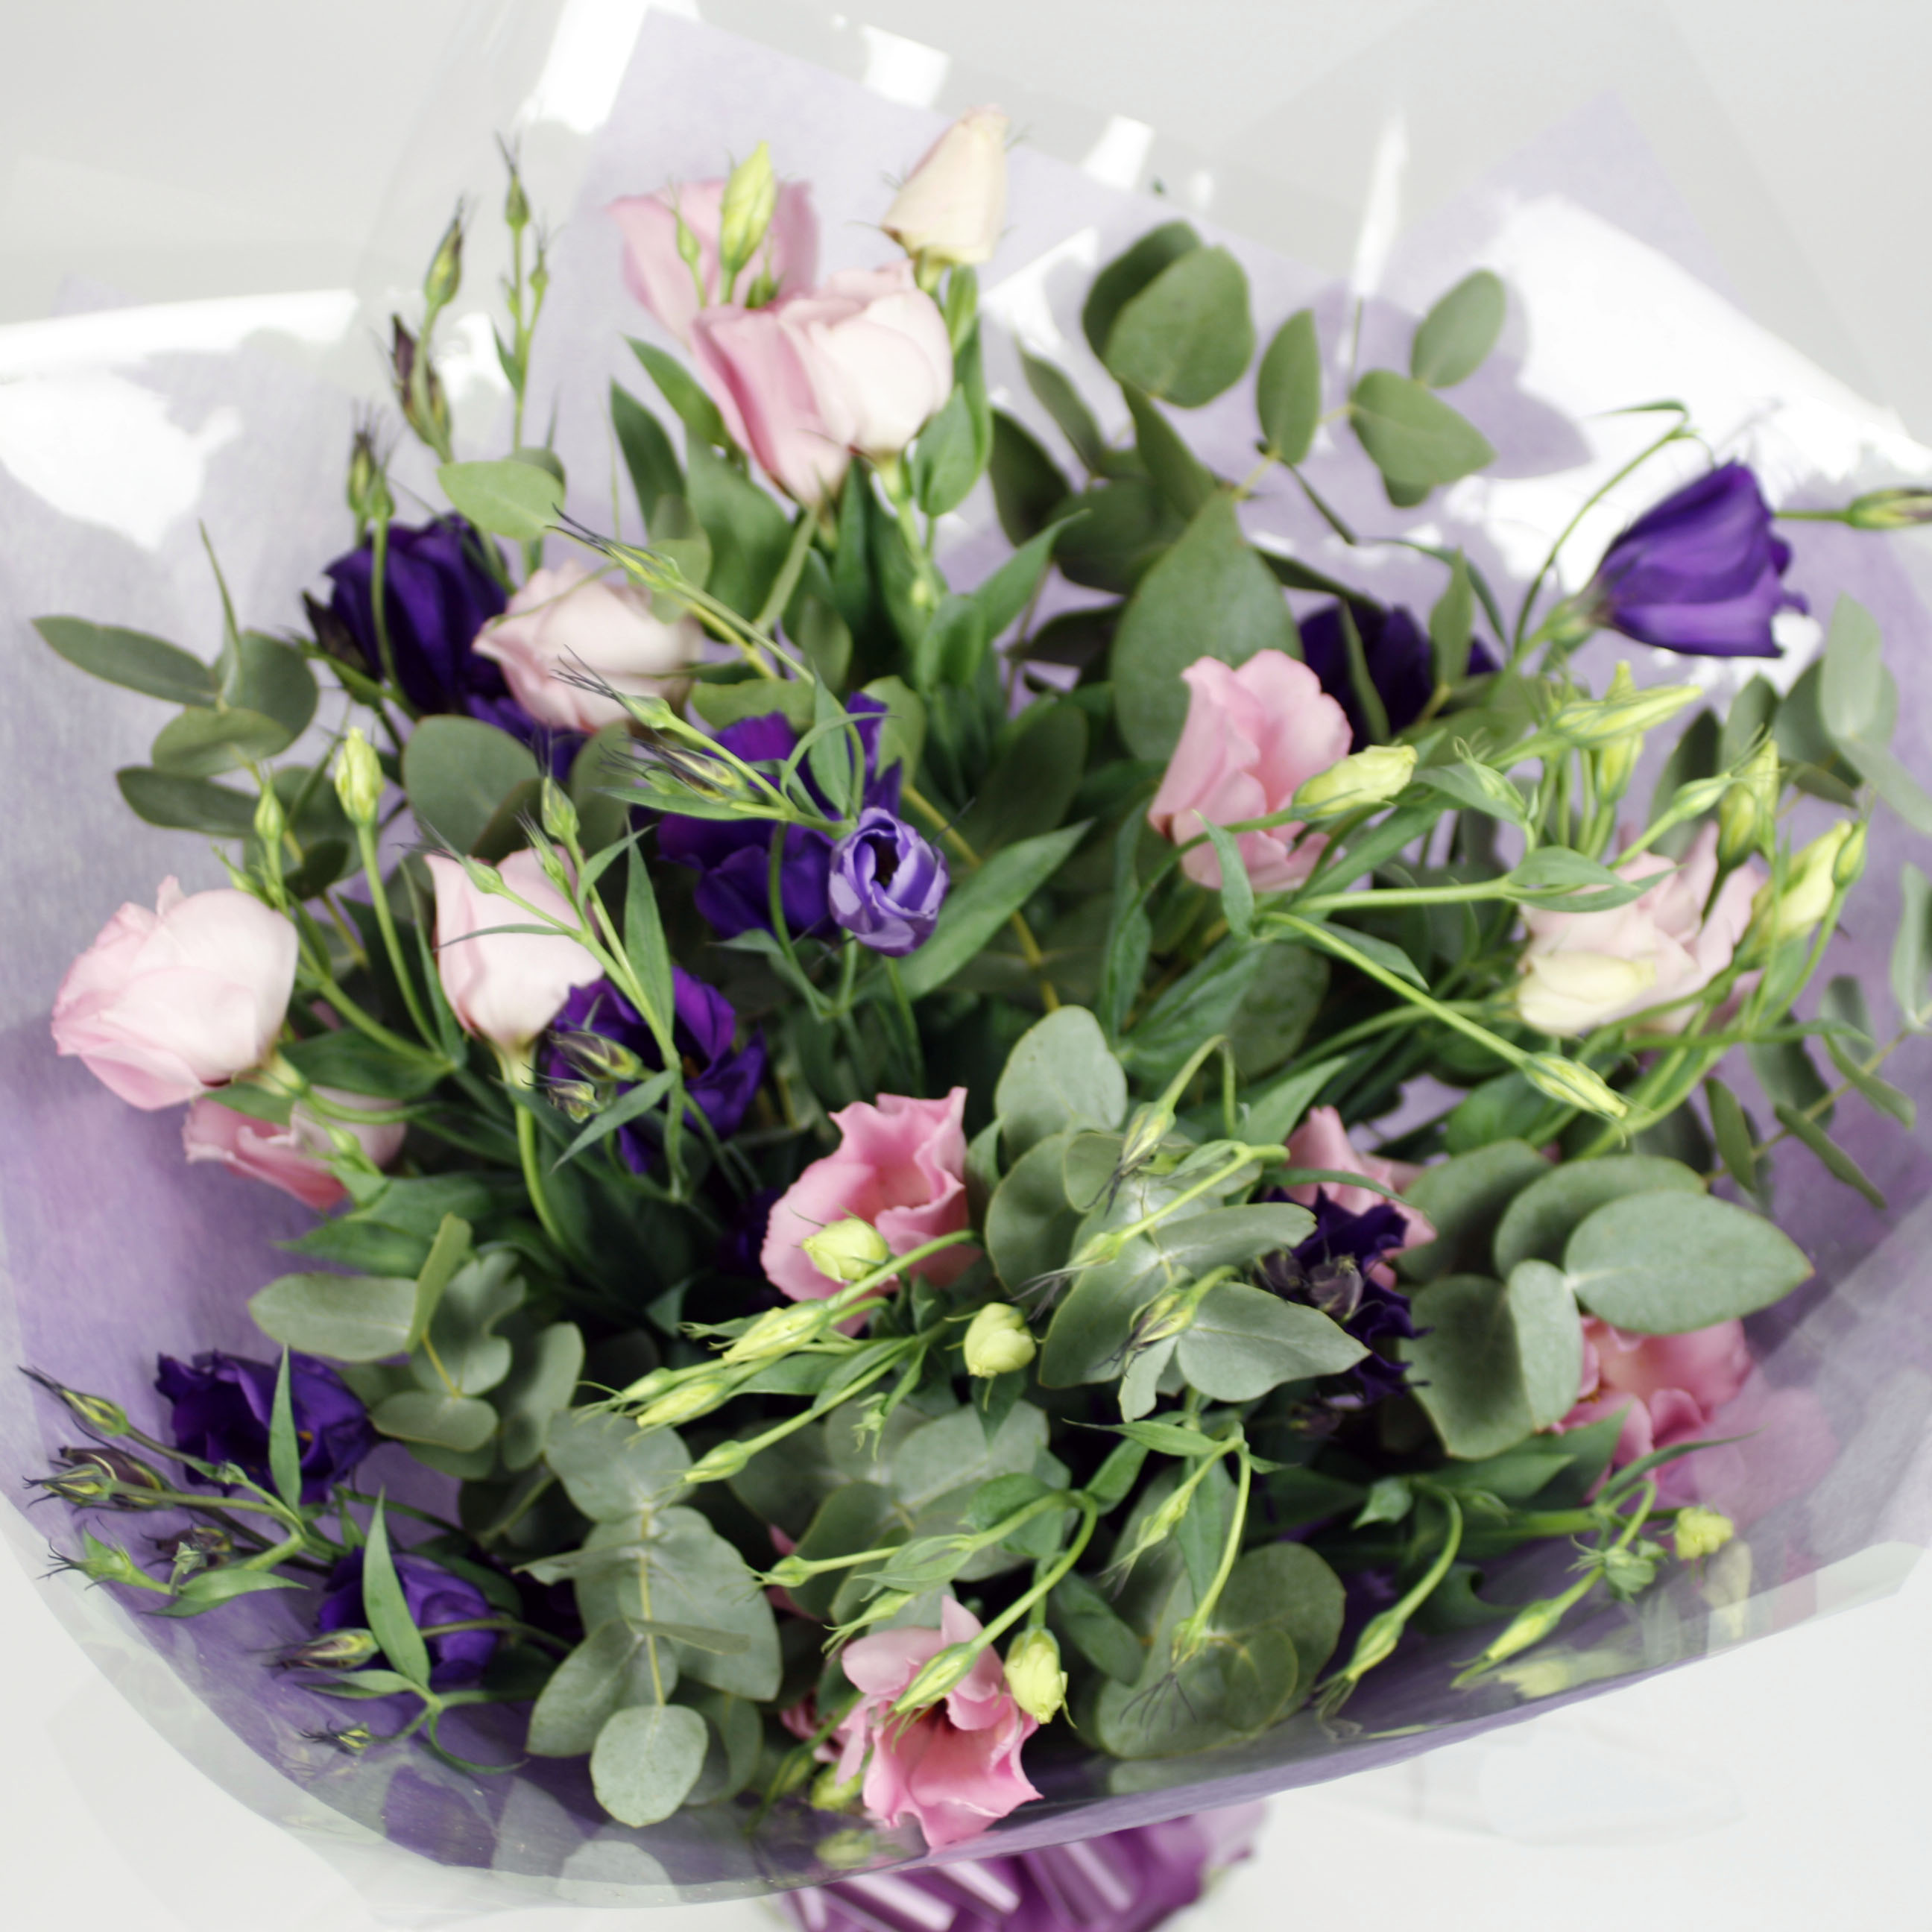 New Gift Baskets And Floral Delights From Flower Delivery Shop